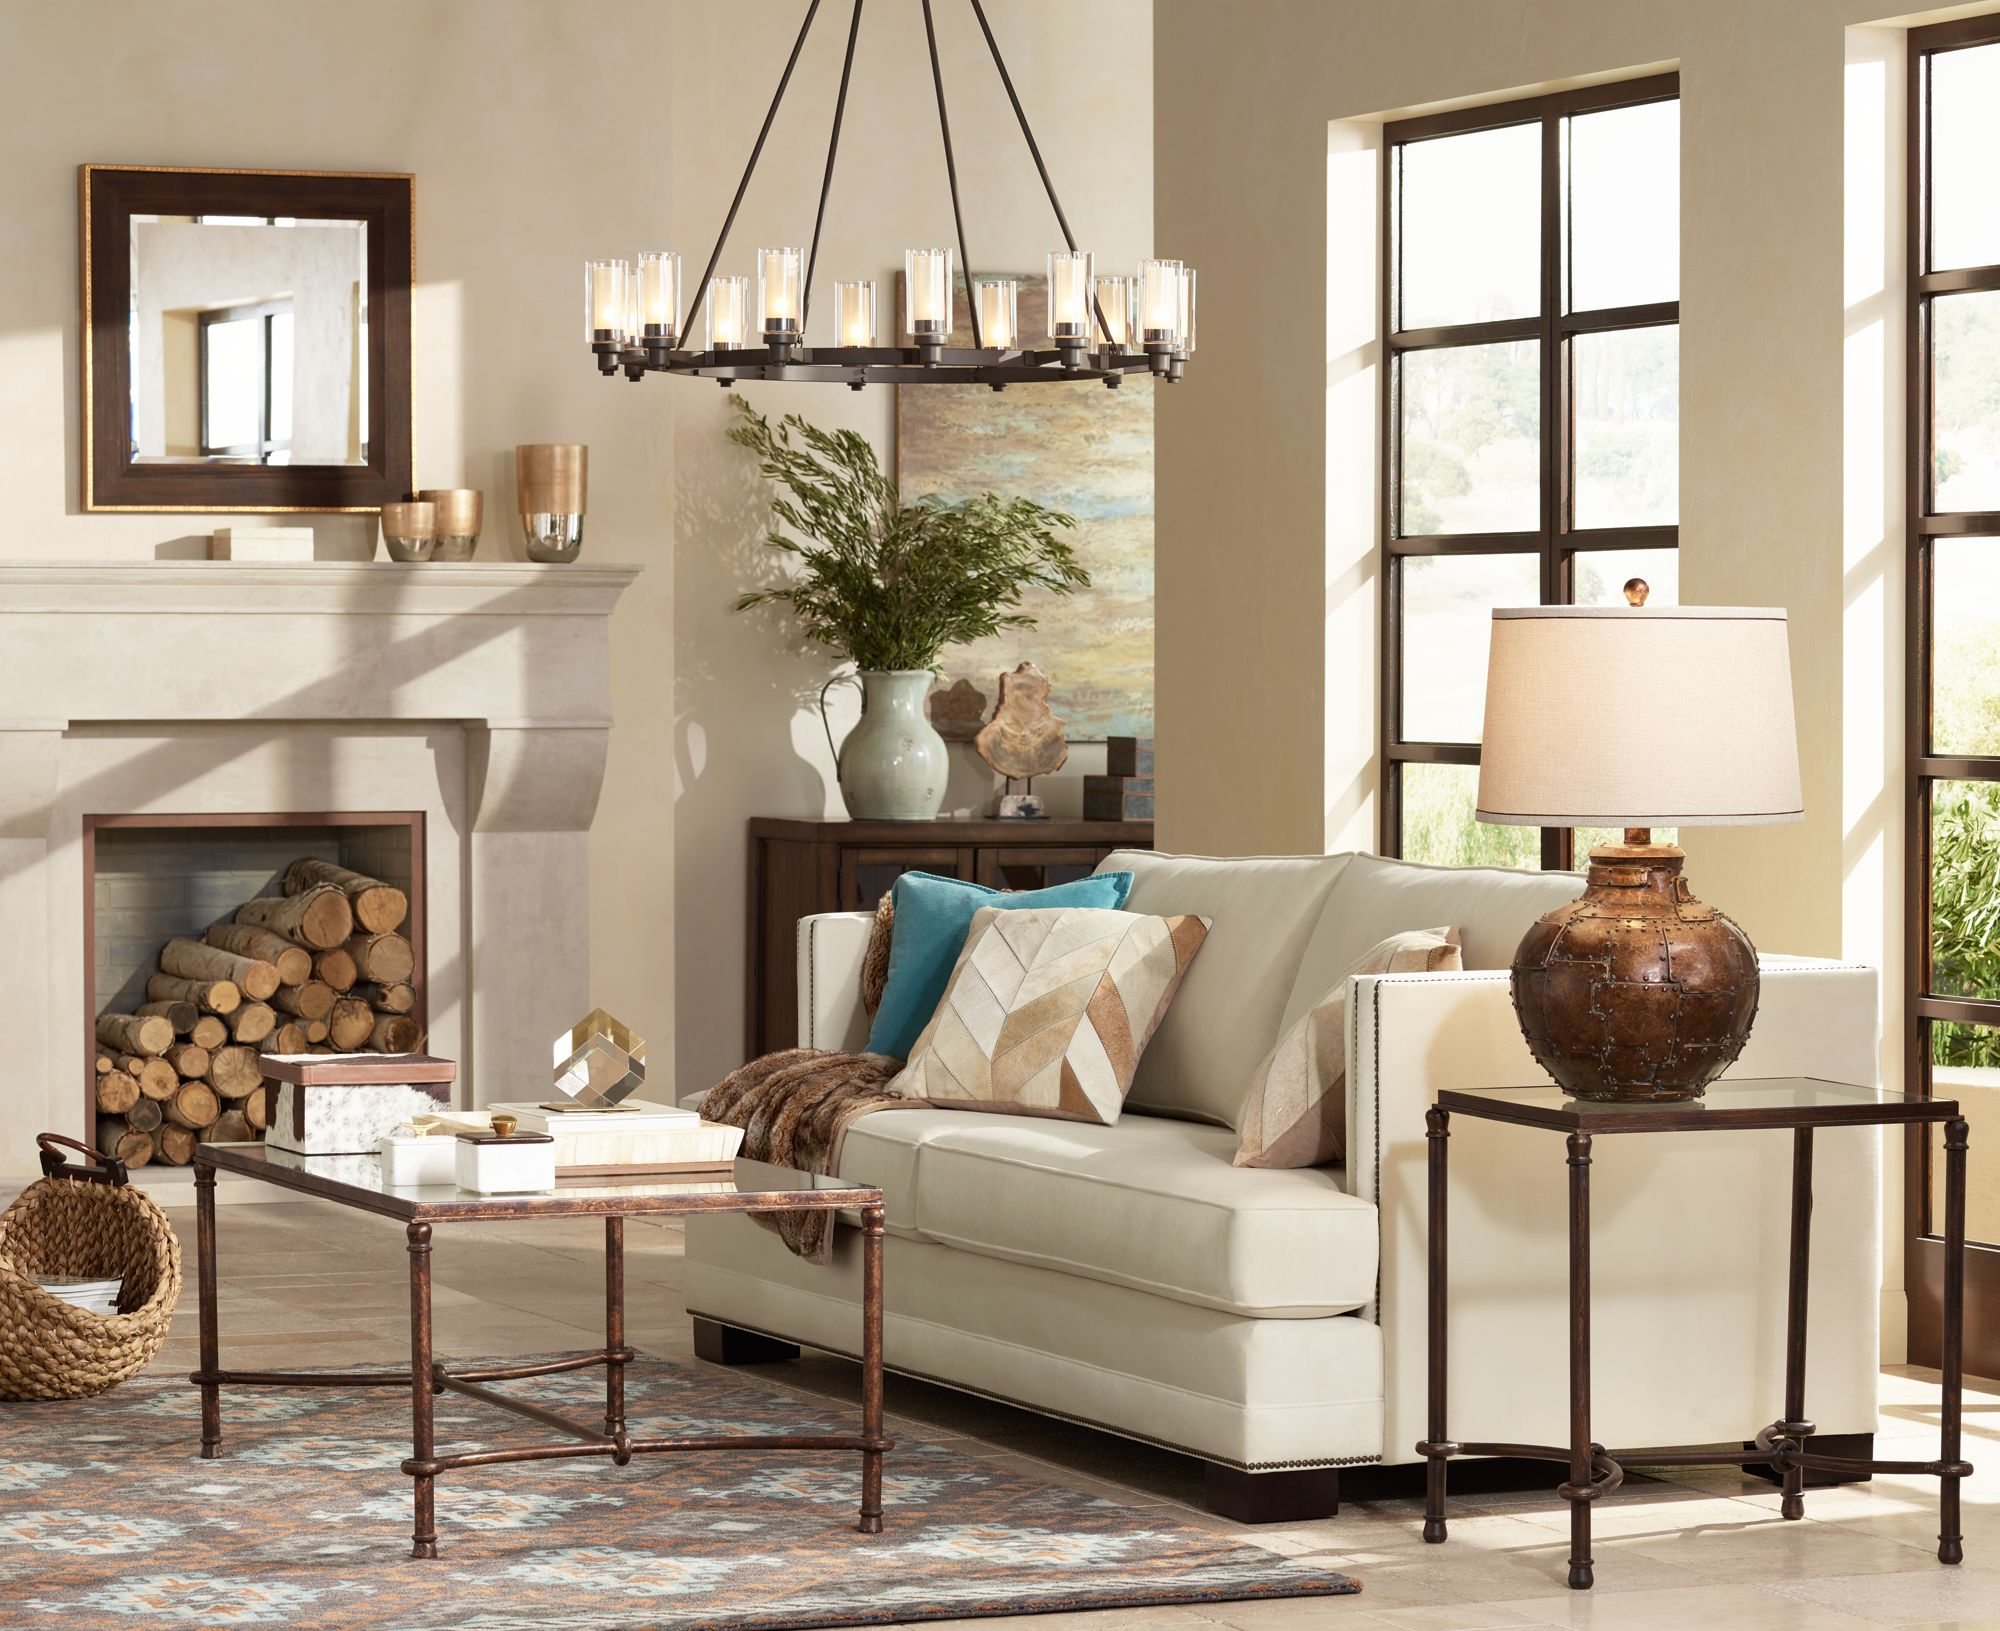 Lovely A Large Chandelier Anchors A Cozy Living Room With Rustic Touches.